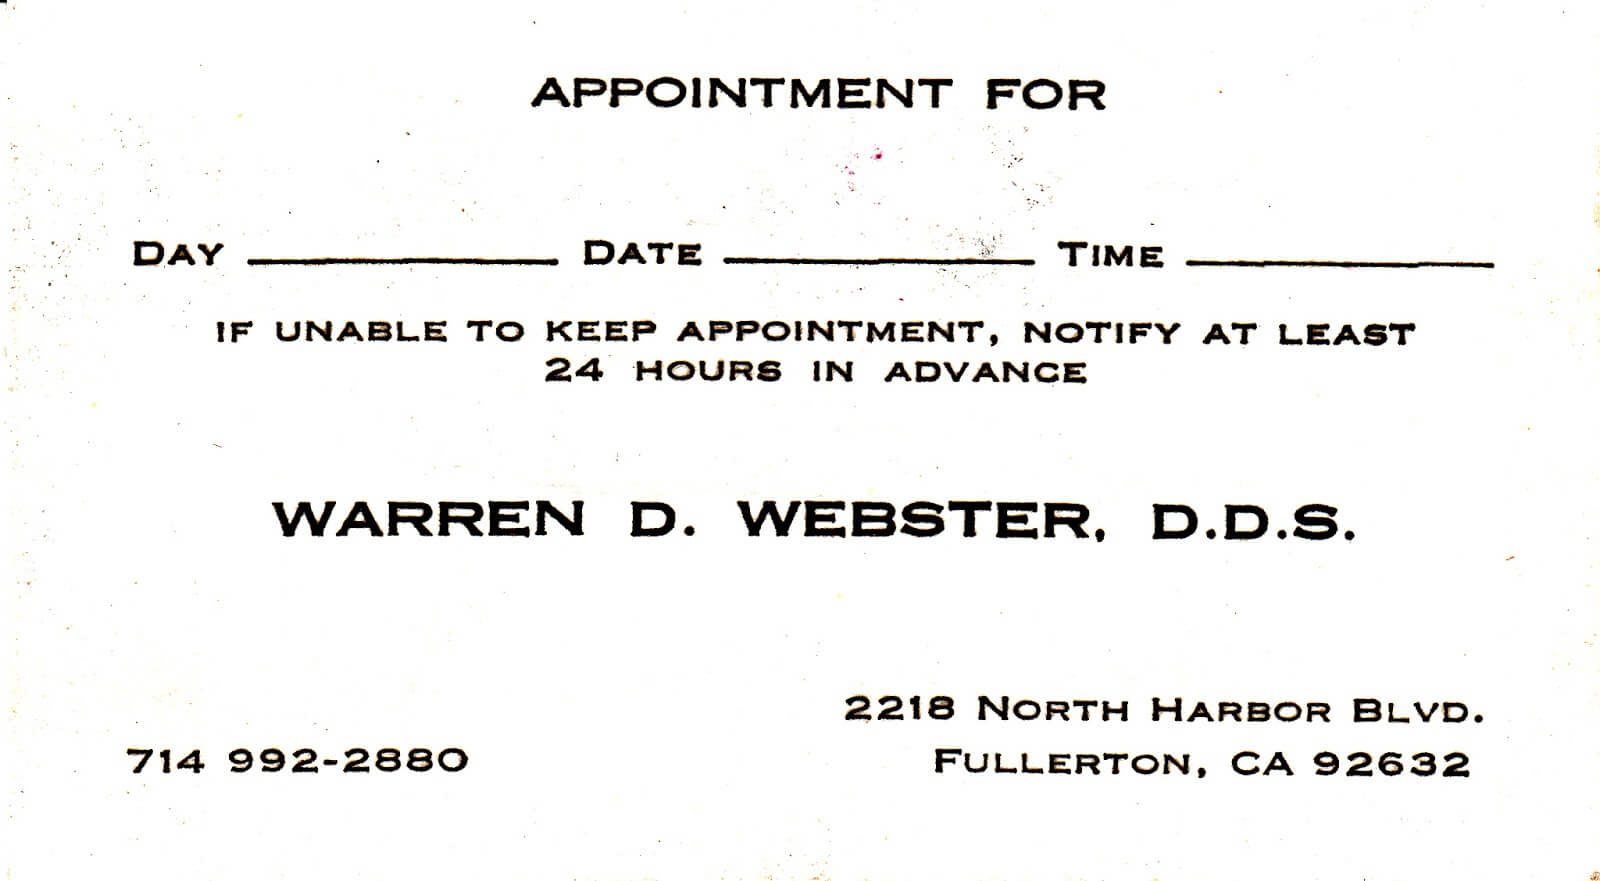 Dental Appointment Card - Zimer.bwong.co Throughout Dentist Appointment Card Template